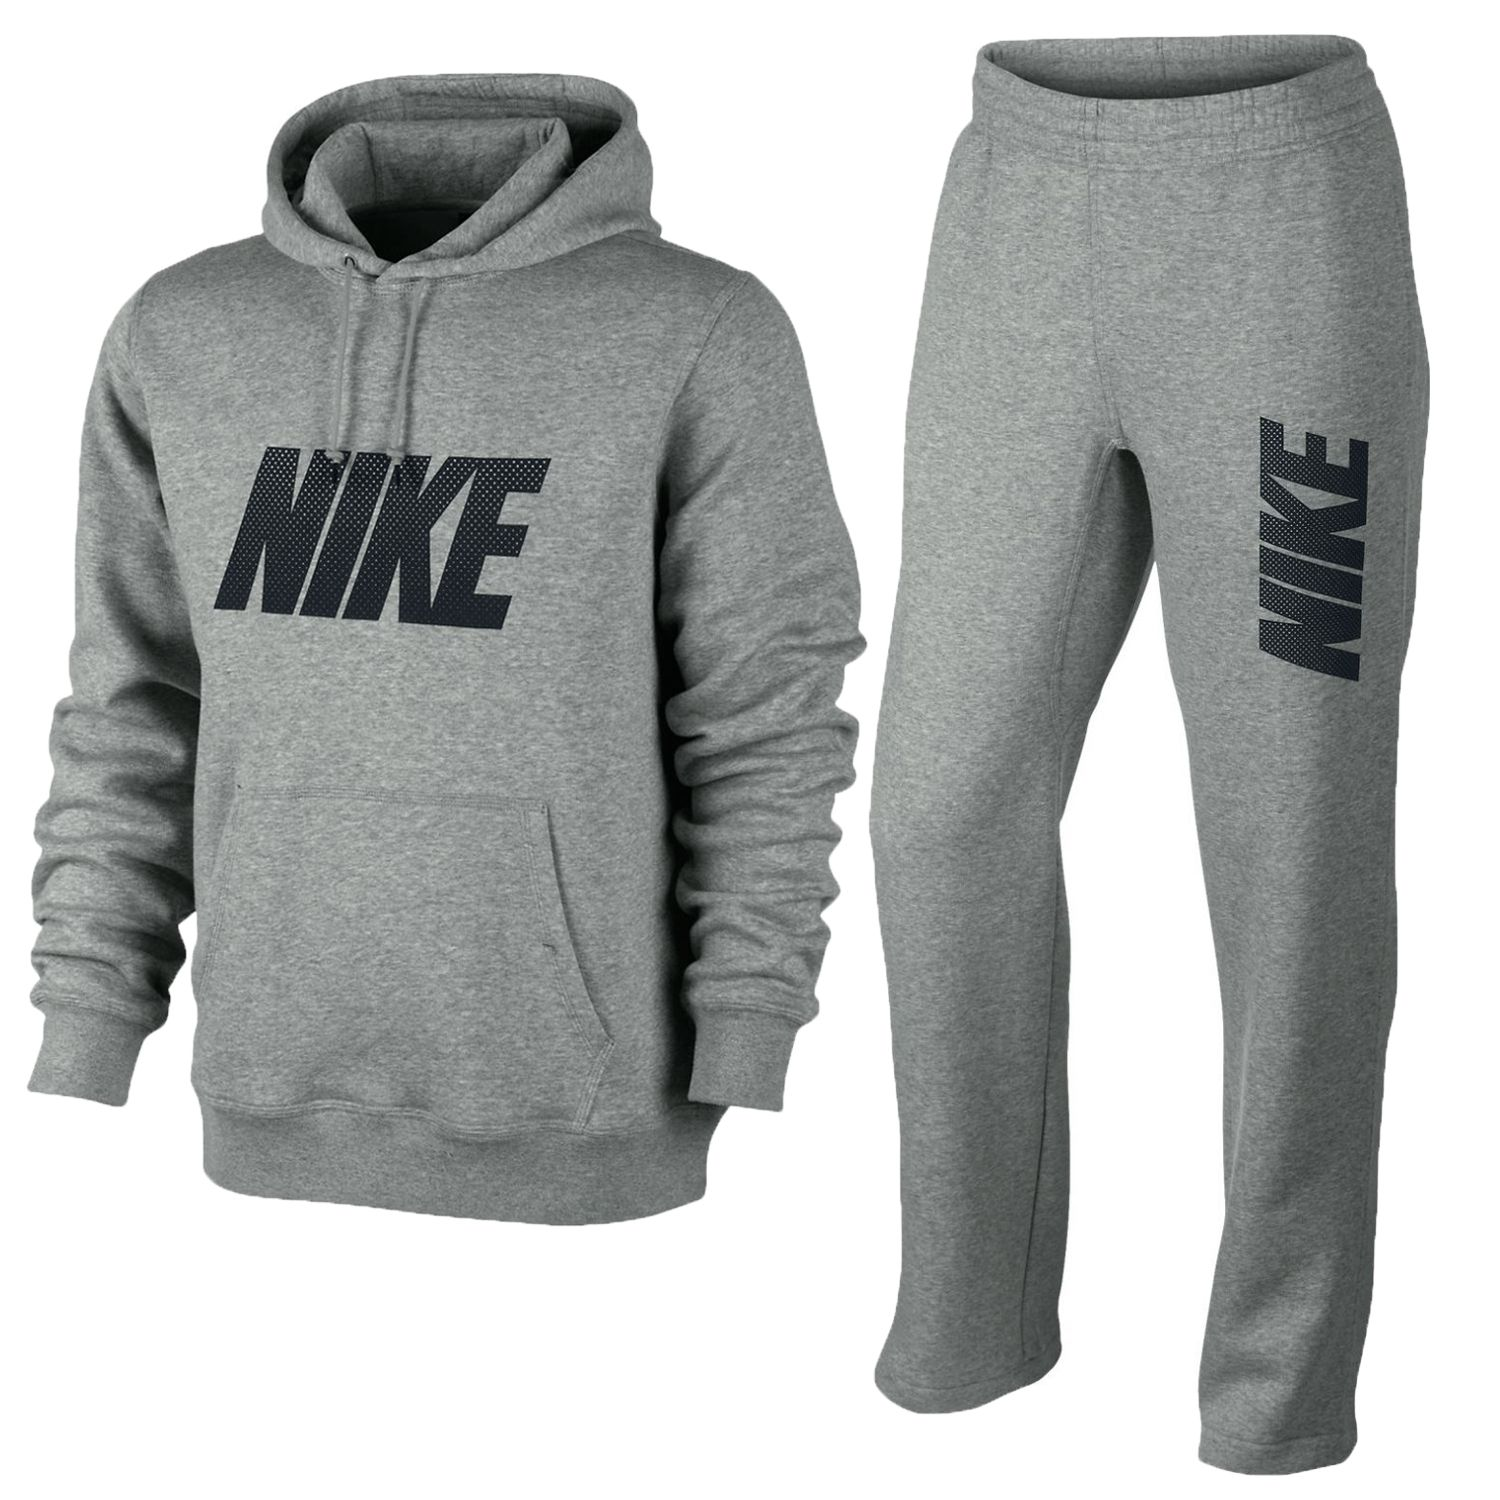 cab223e1efe0 Nike Mens Club Grey Hooded Fleece Tracksuit Hoody Top Jogging Bottoms New